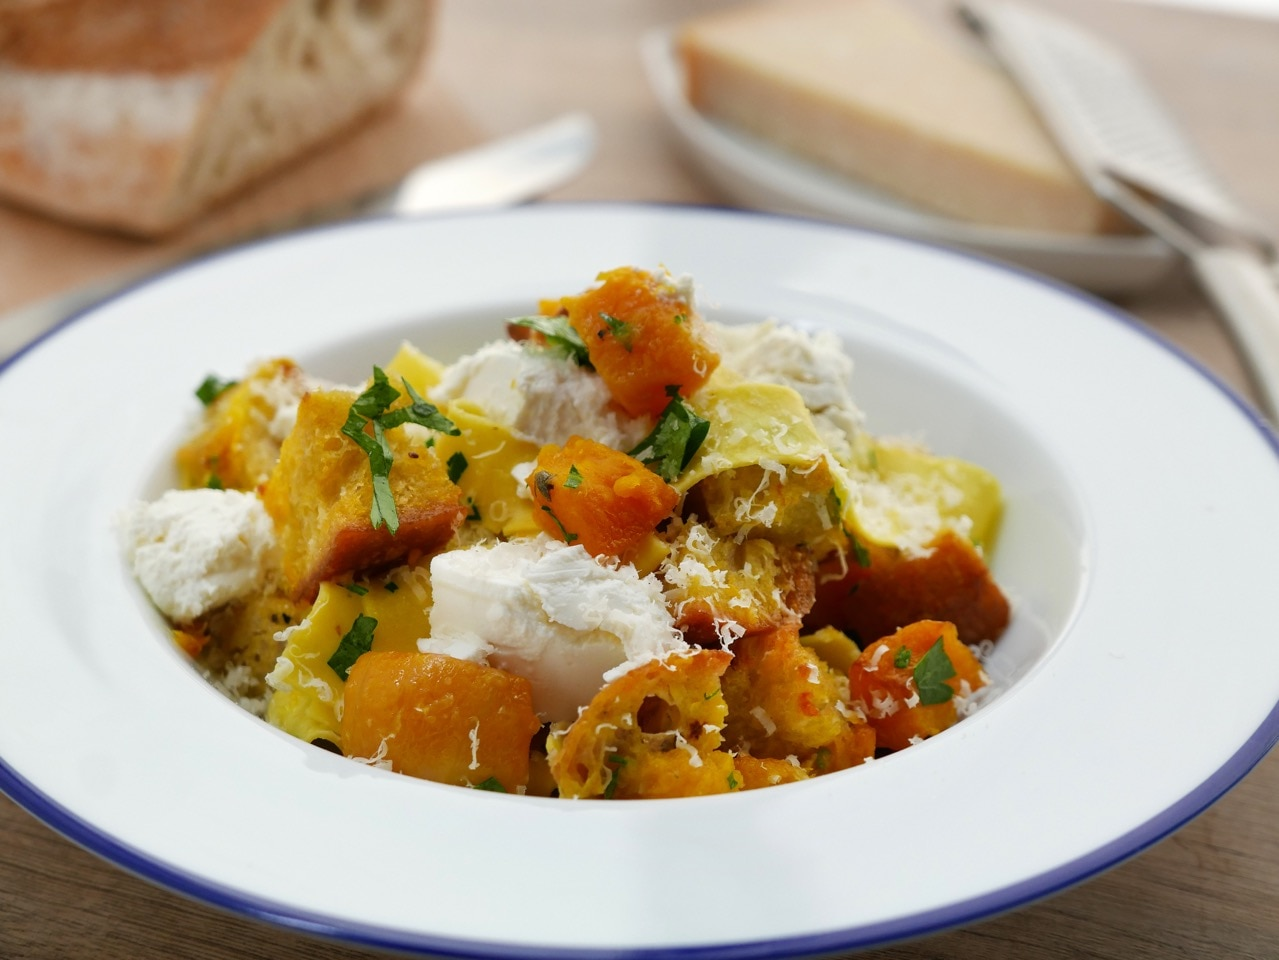 Pappardelle with Butternut Squash